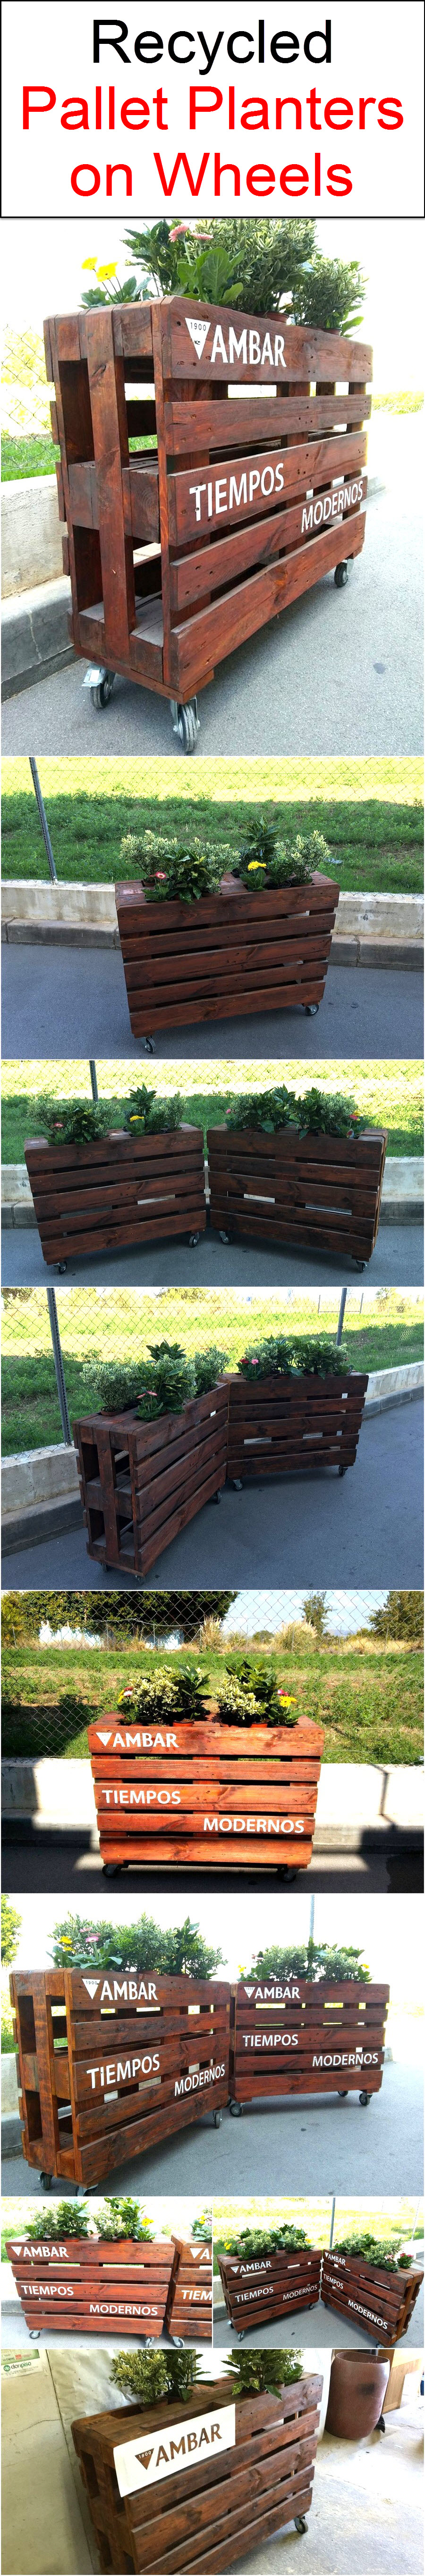 recycled-pallet-planters-on-wheels